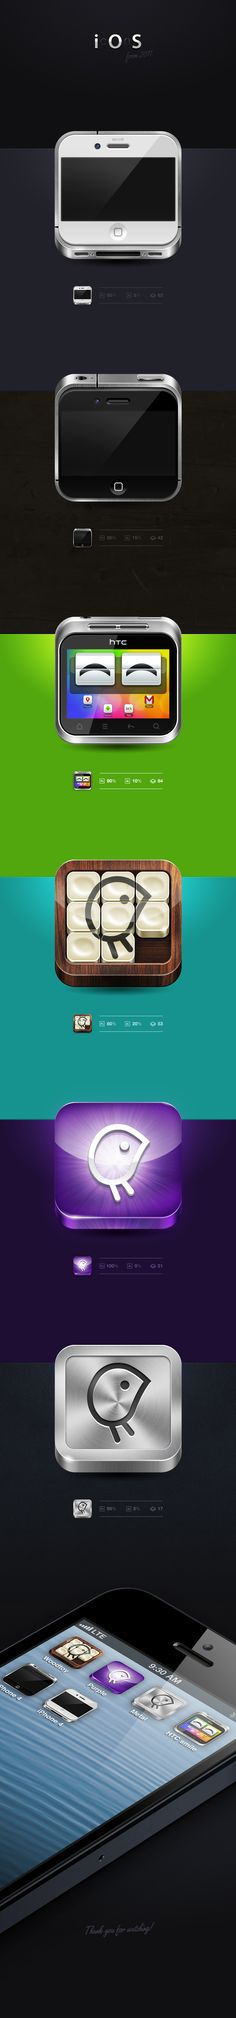 some iOS icons from 2011